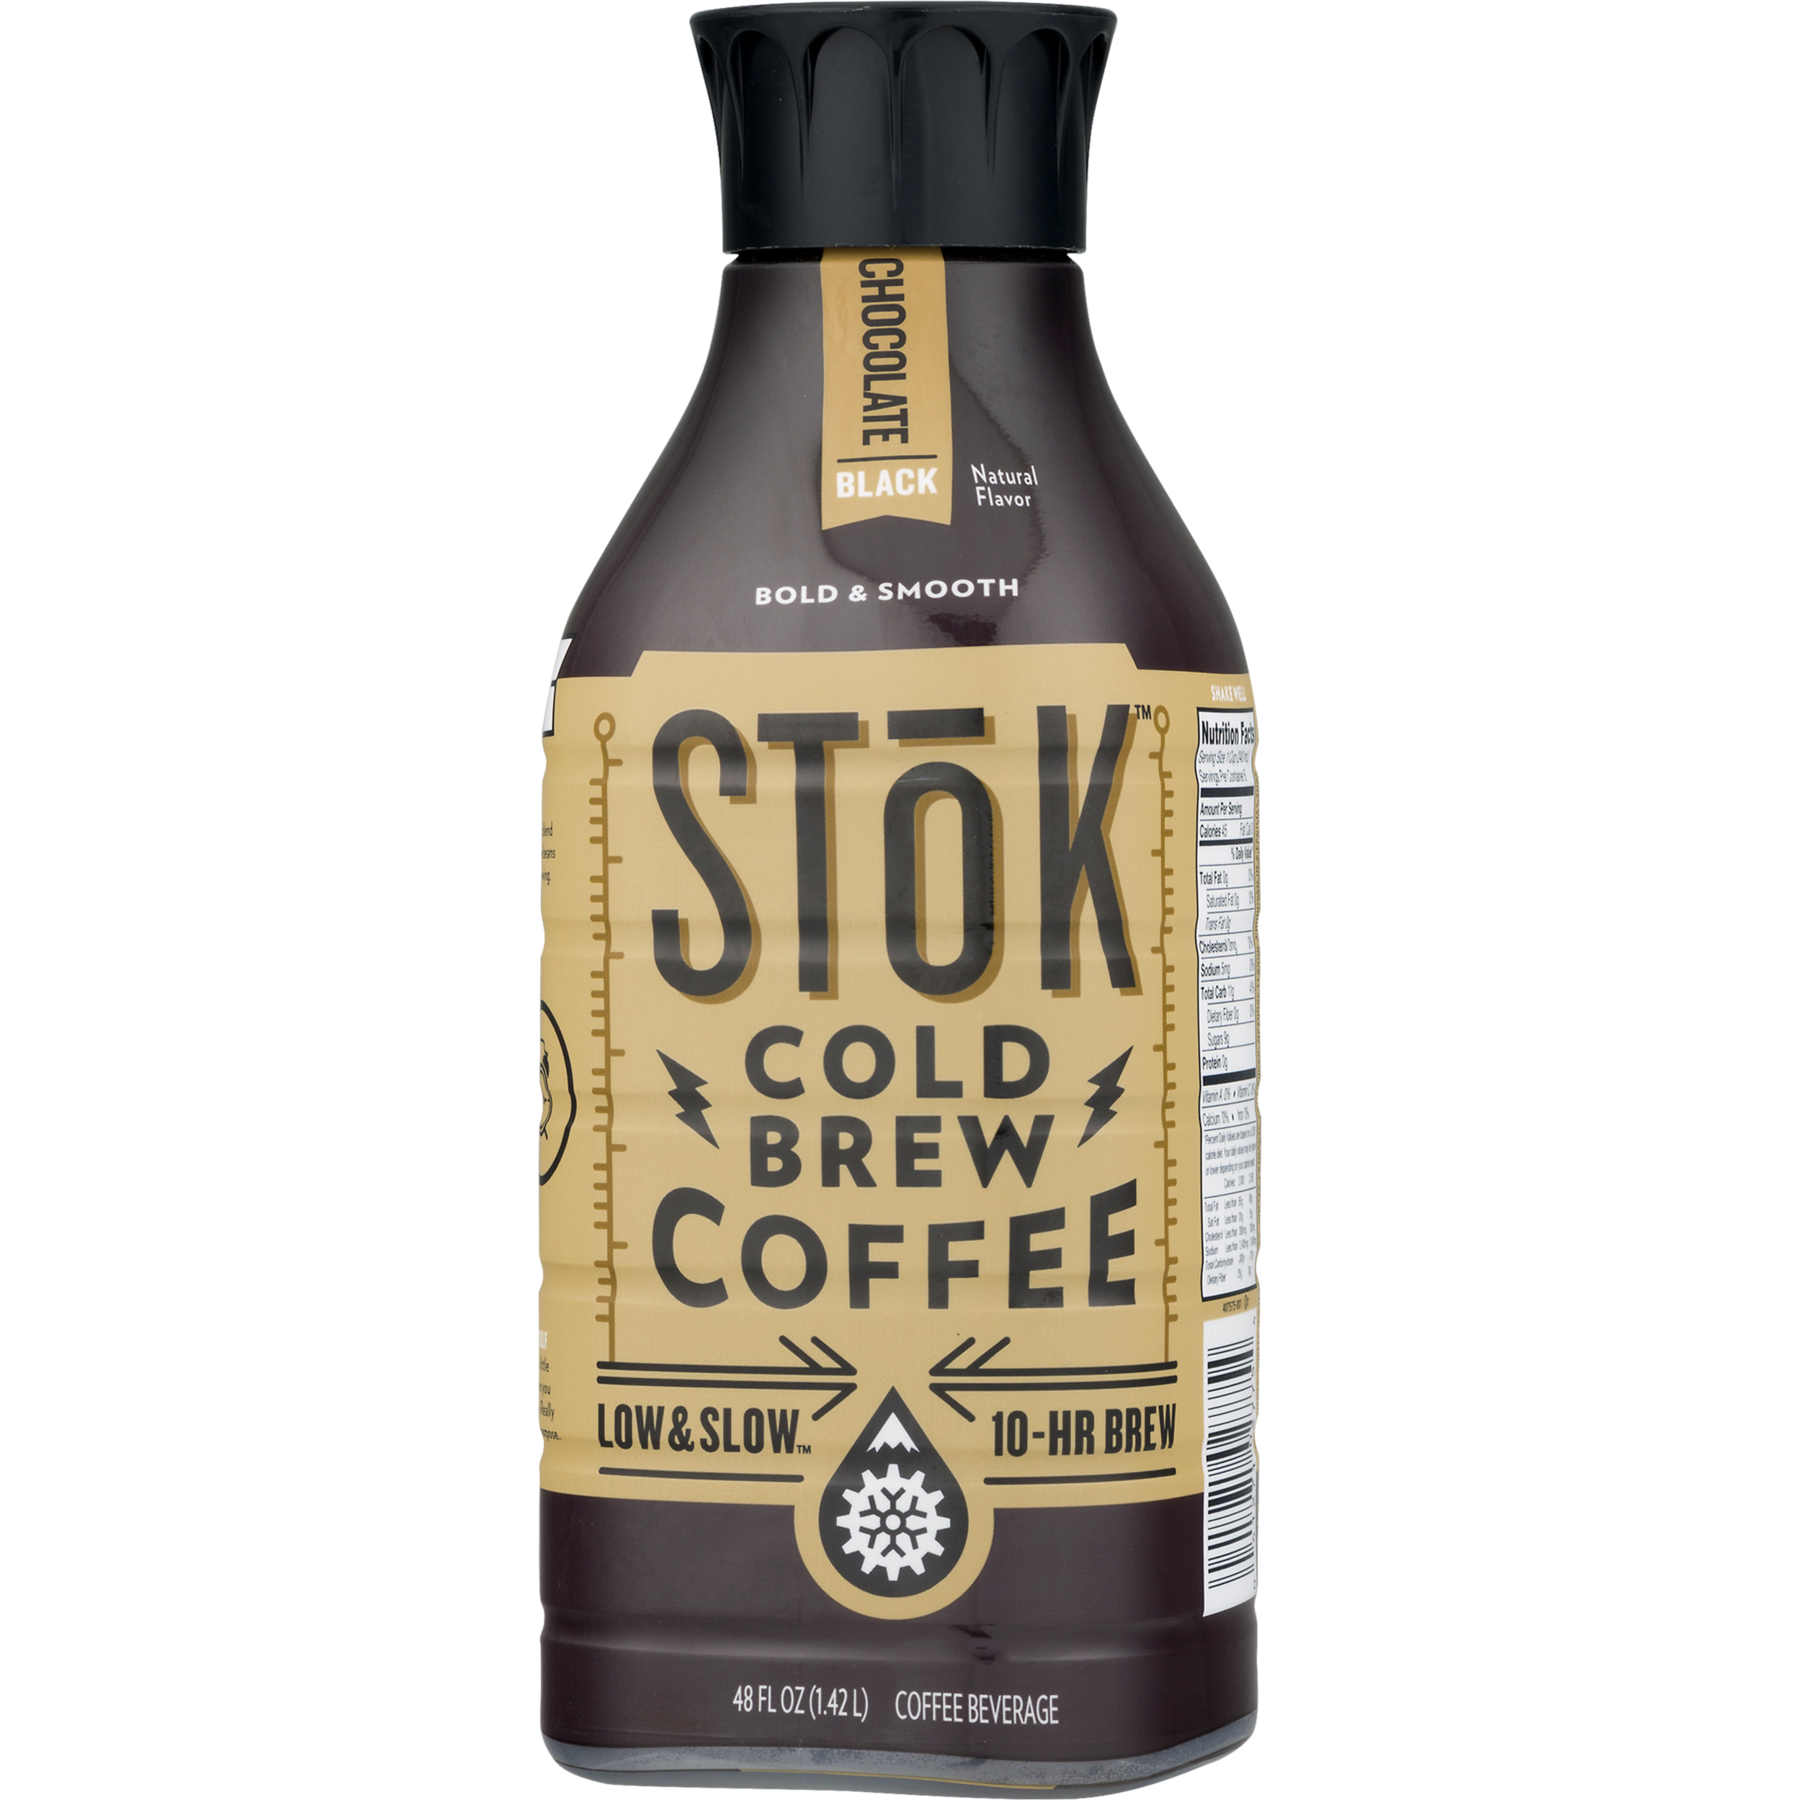 Stok Cold Brew Chocolate Black Coffee, 48 Fl. Oz